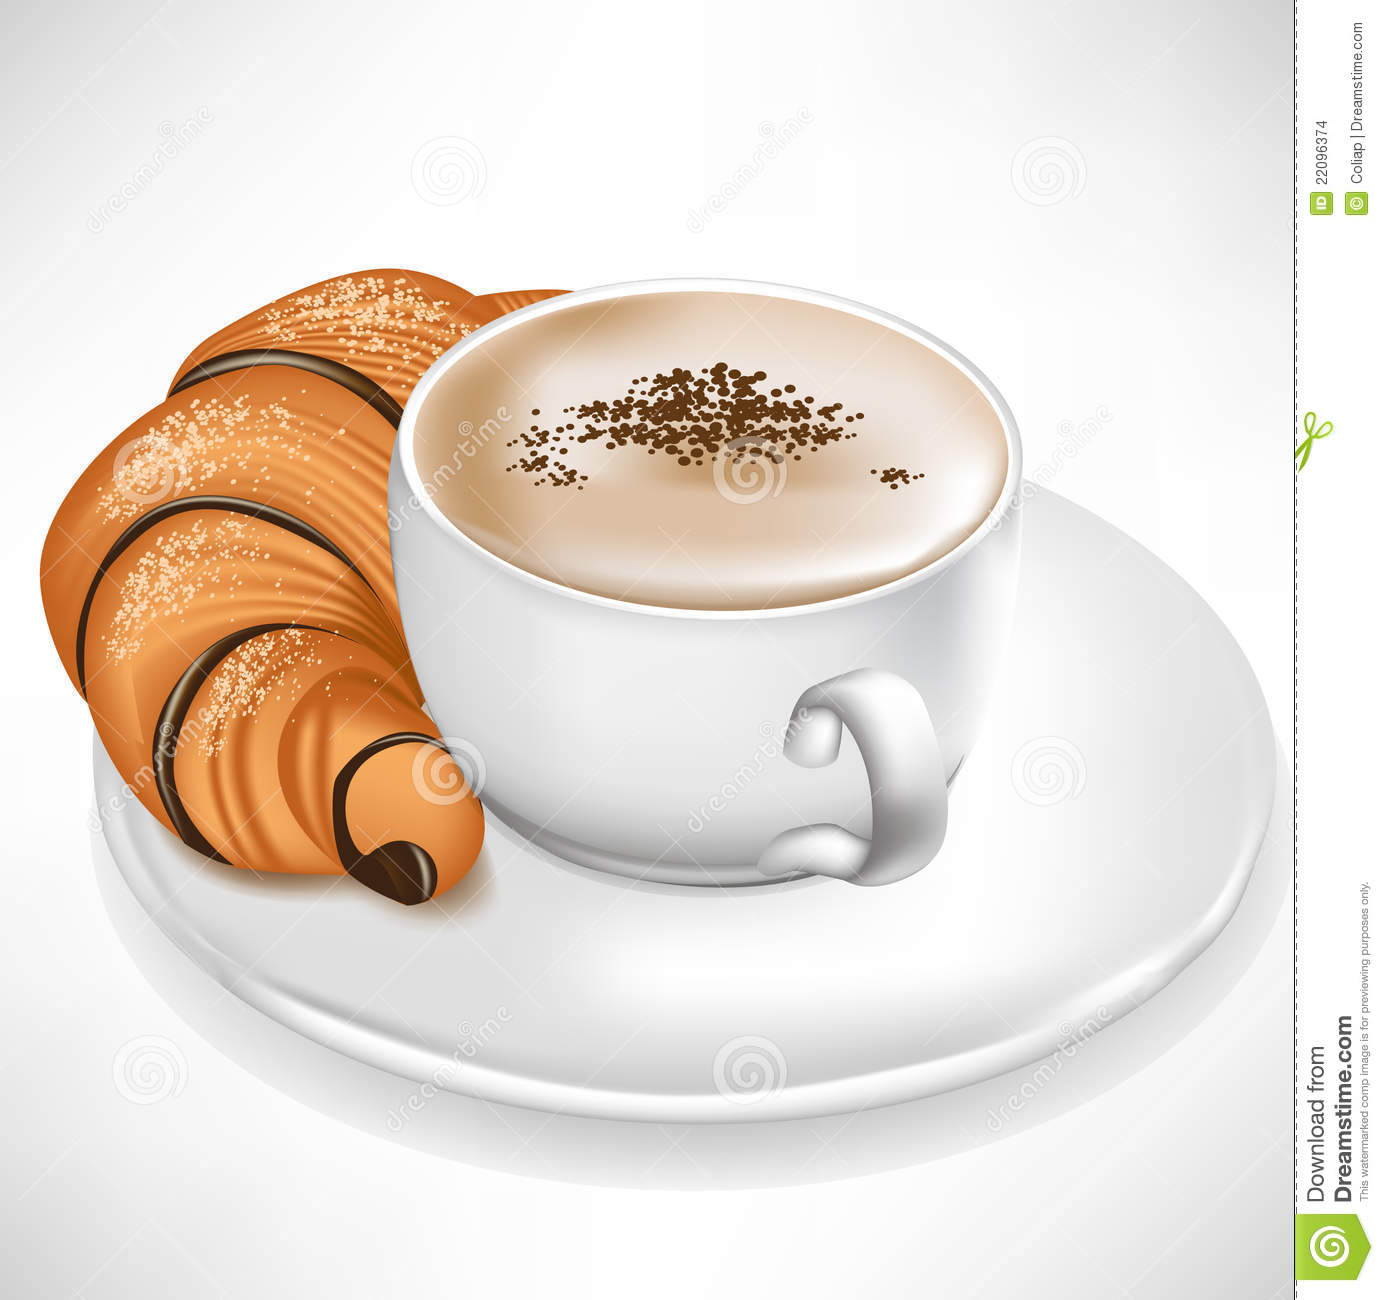 Croissant Served With Coffee Cup Stock Images - Image: 22096374